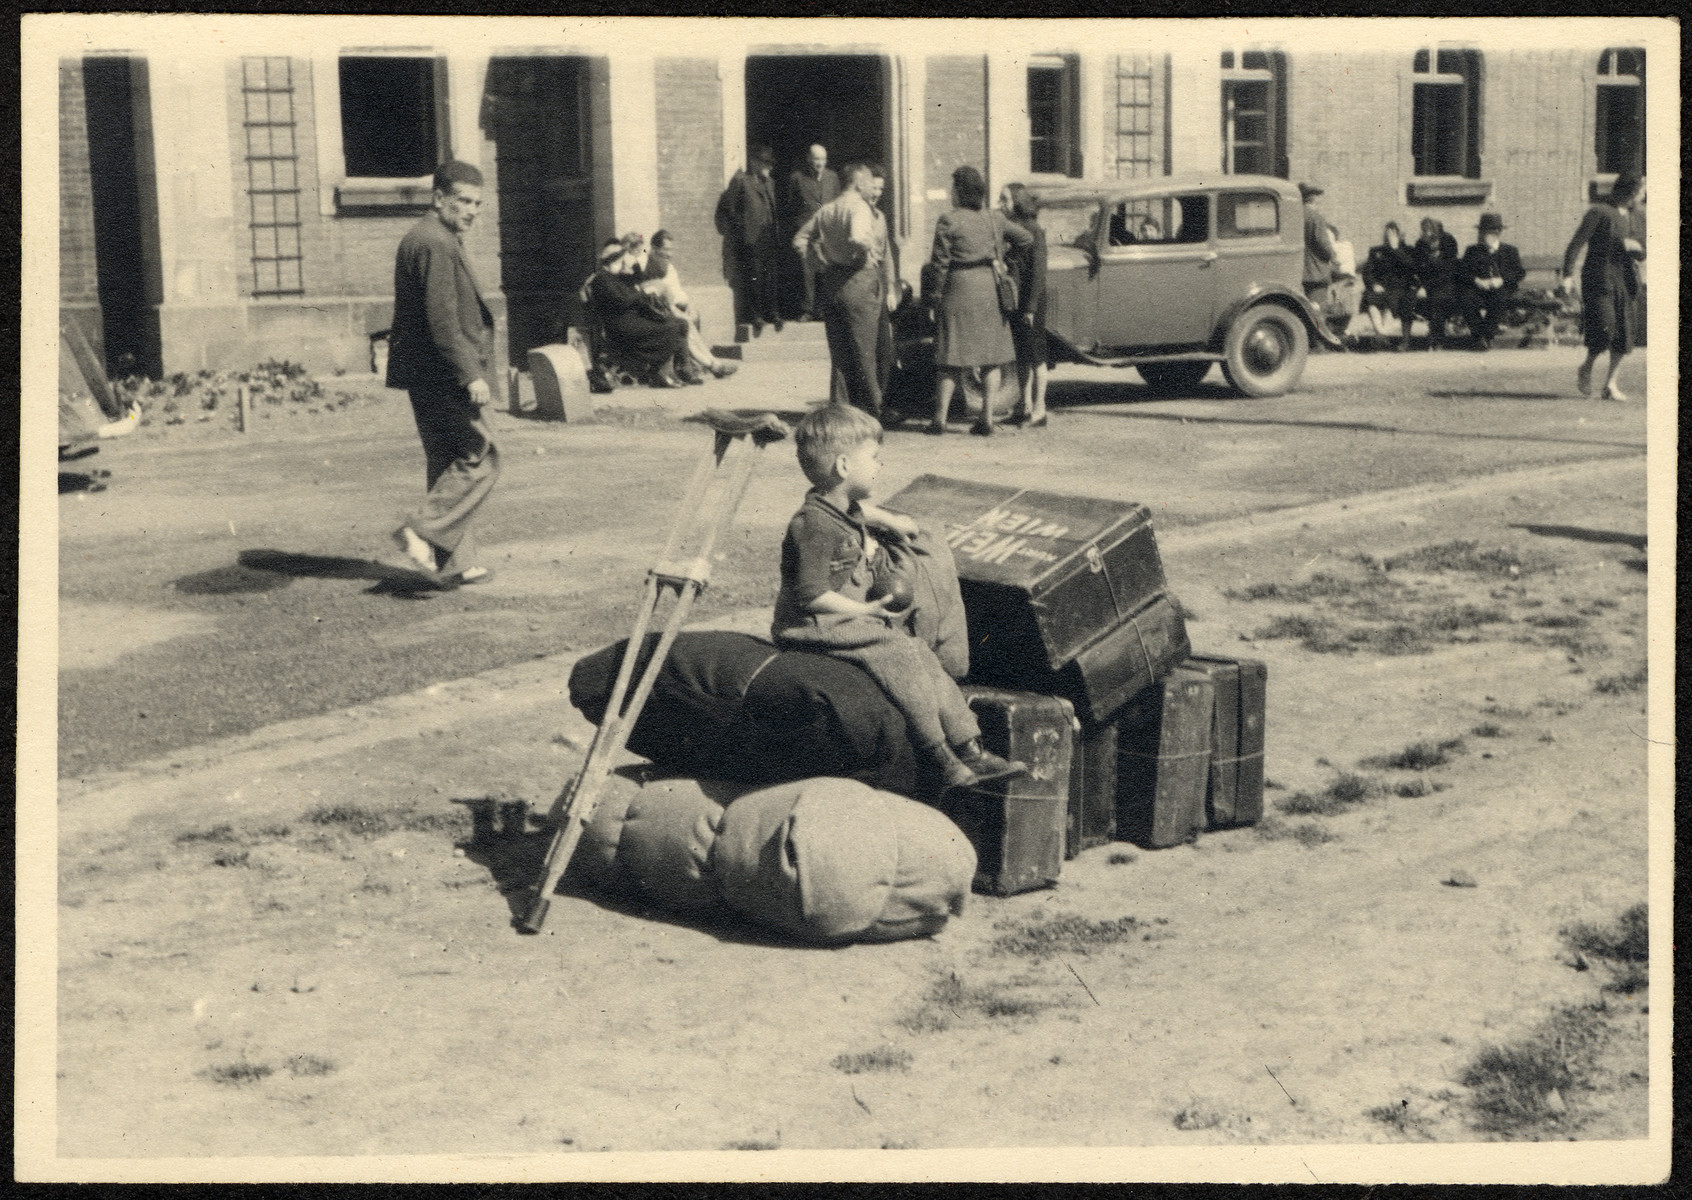 A young child sits among suitcases and a crutch while waiting to depart the Deggendorf displaced persons' camp.